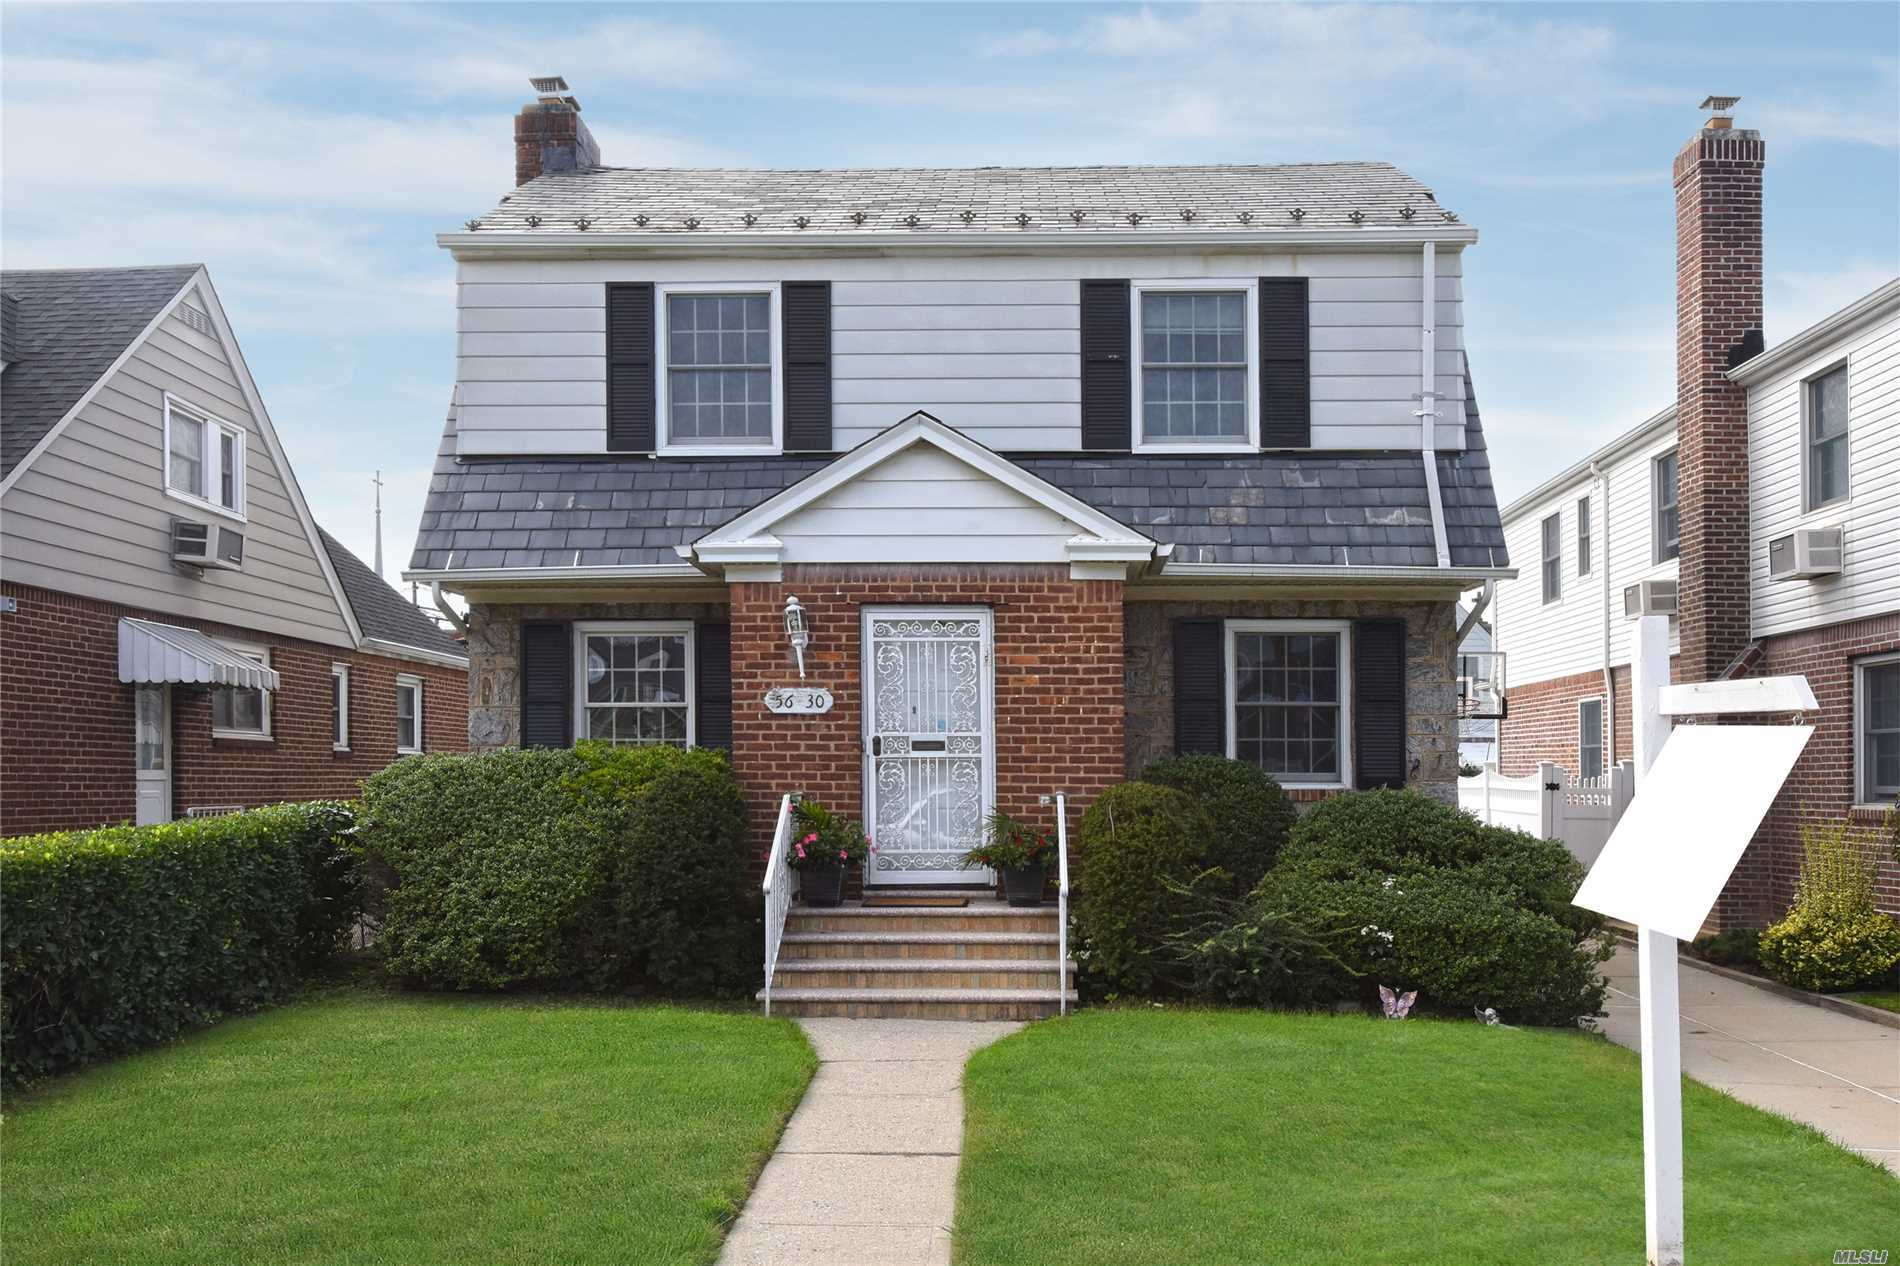 Lovely Detached Colonial On Beautiful Tree Lined Street In Bayside Hills. Convenient To Shopping & Transportation. Sd 26 - P.S. 376, J.H.S. 74, Benjamin Cardozo H.S.